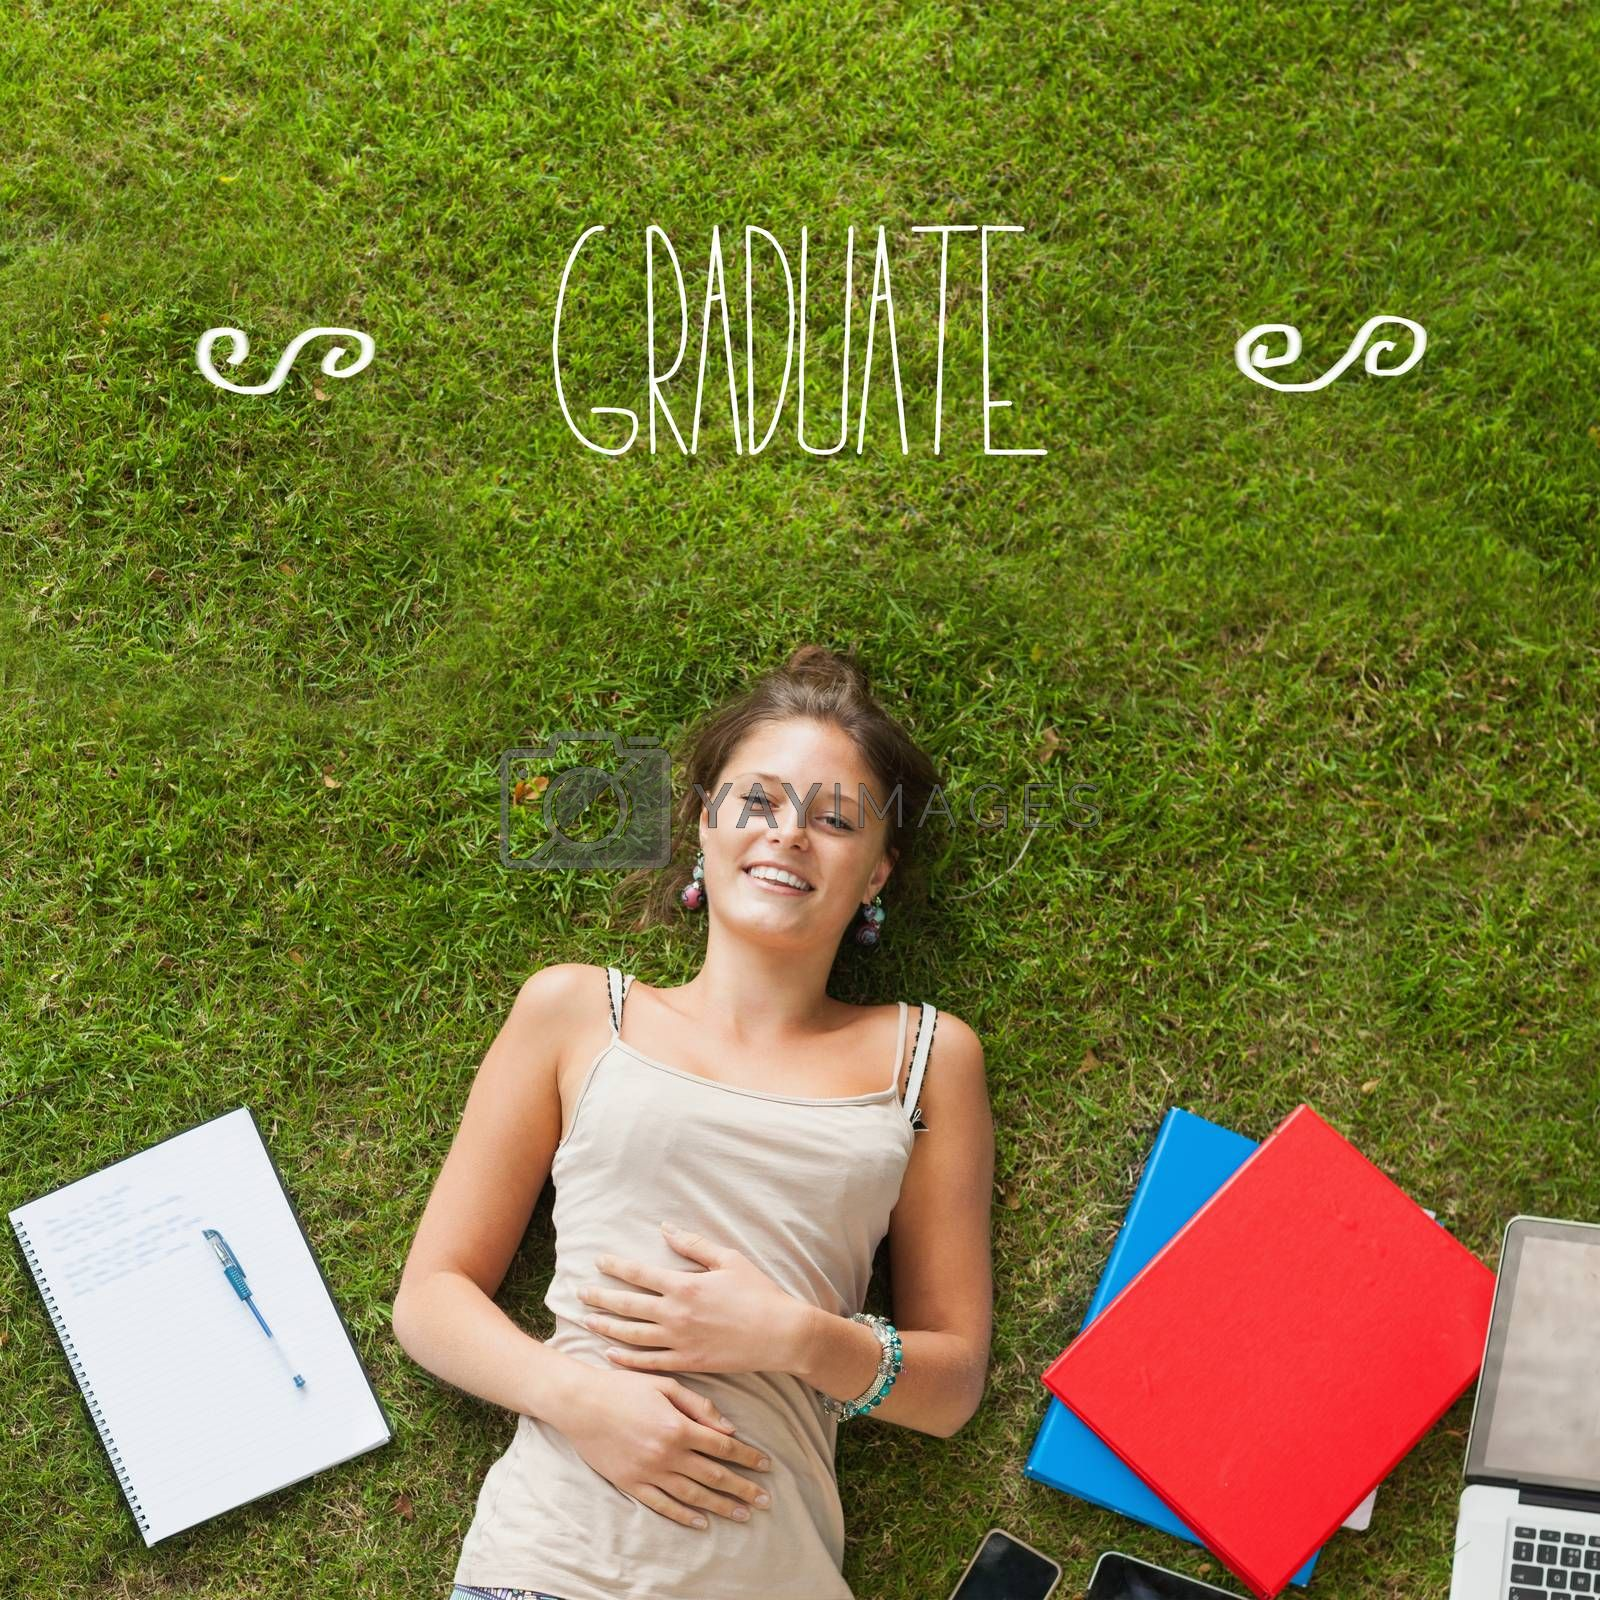 The word graduate against pretty student lying on grass